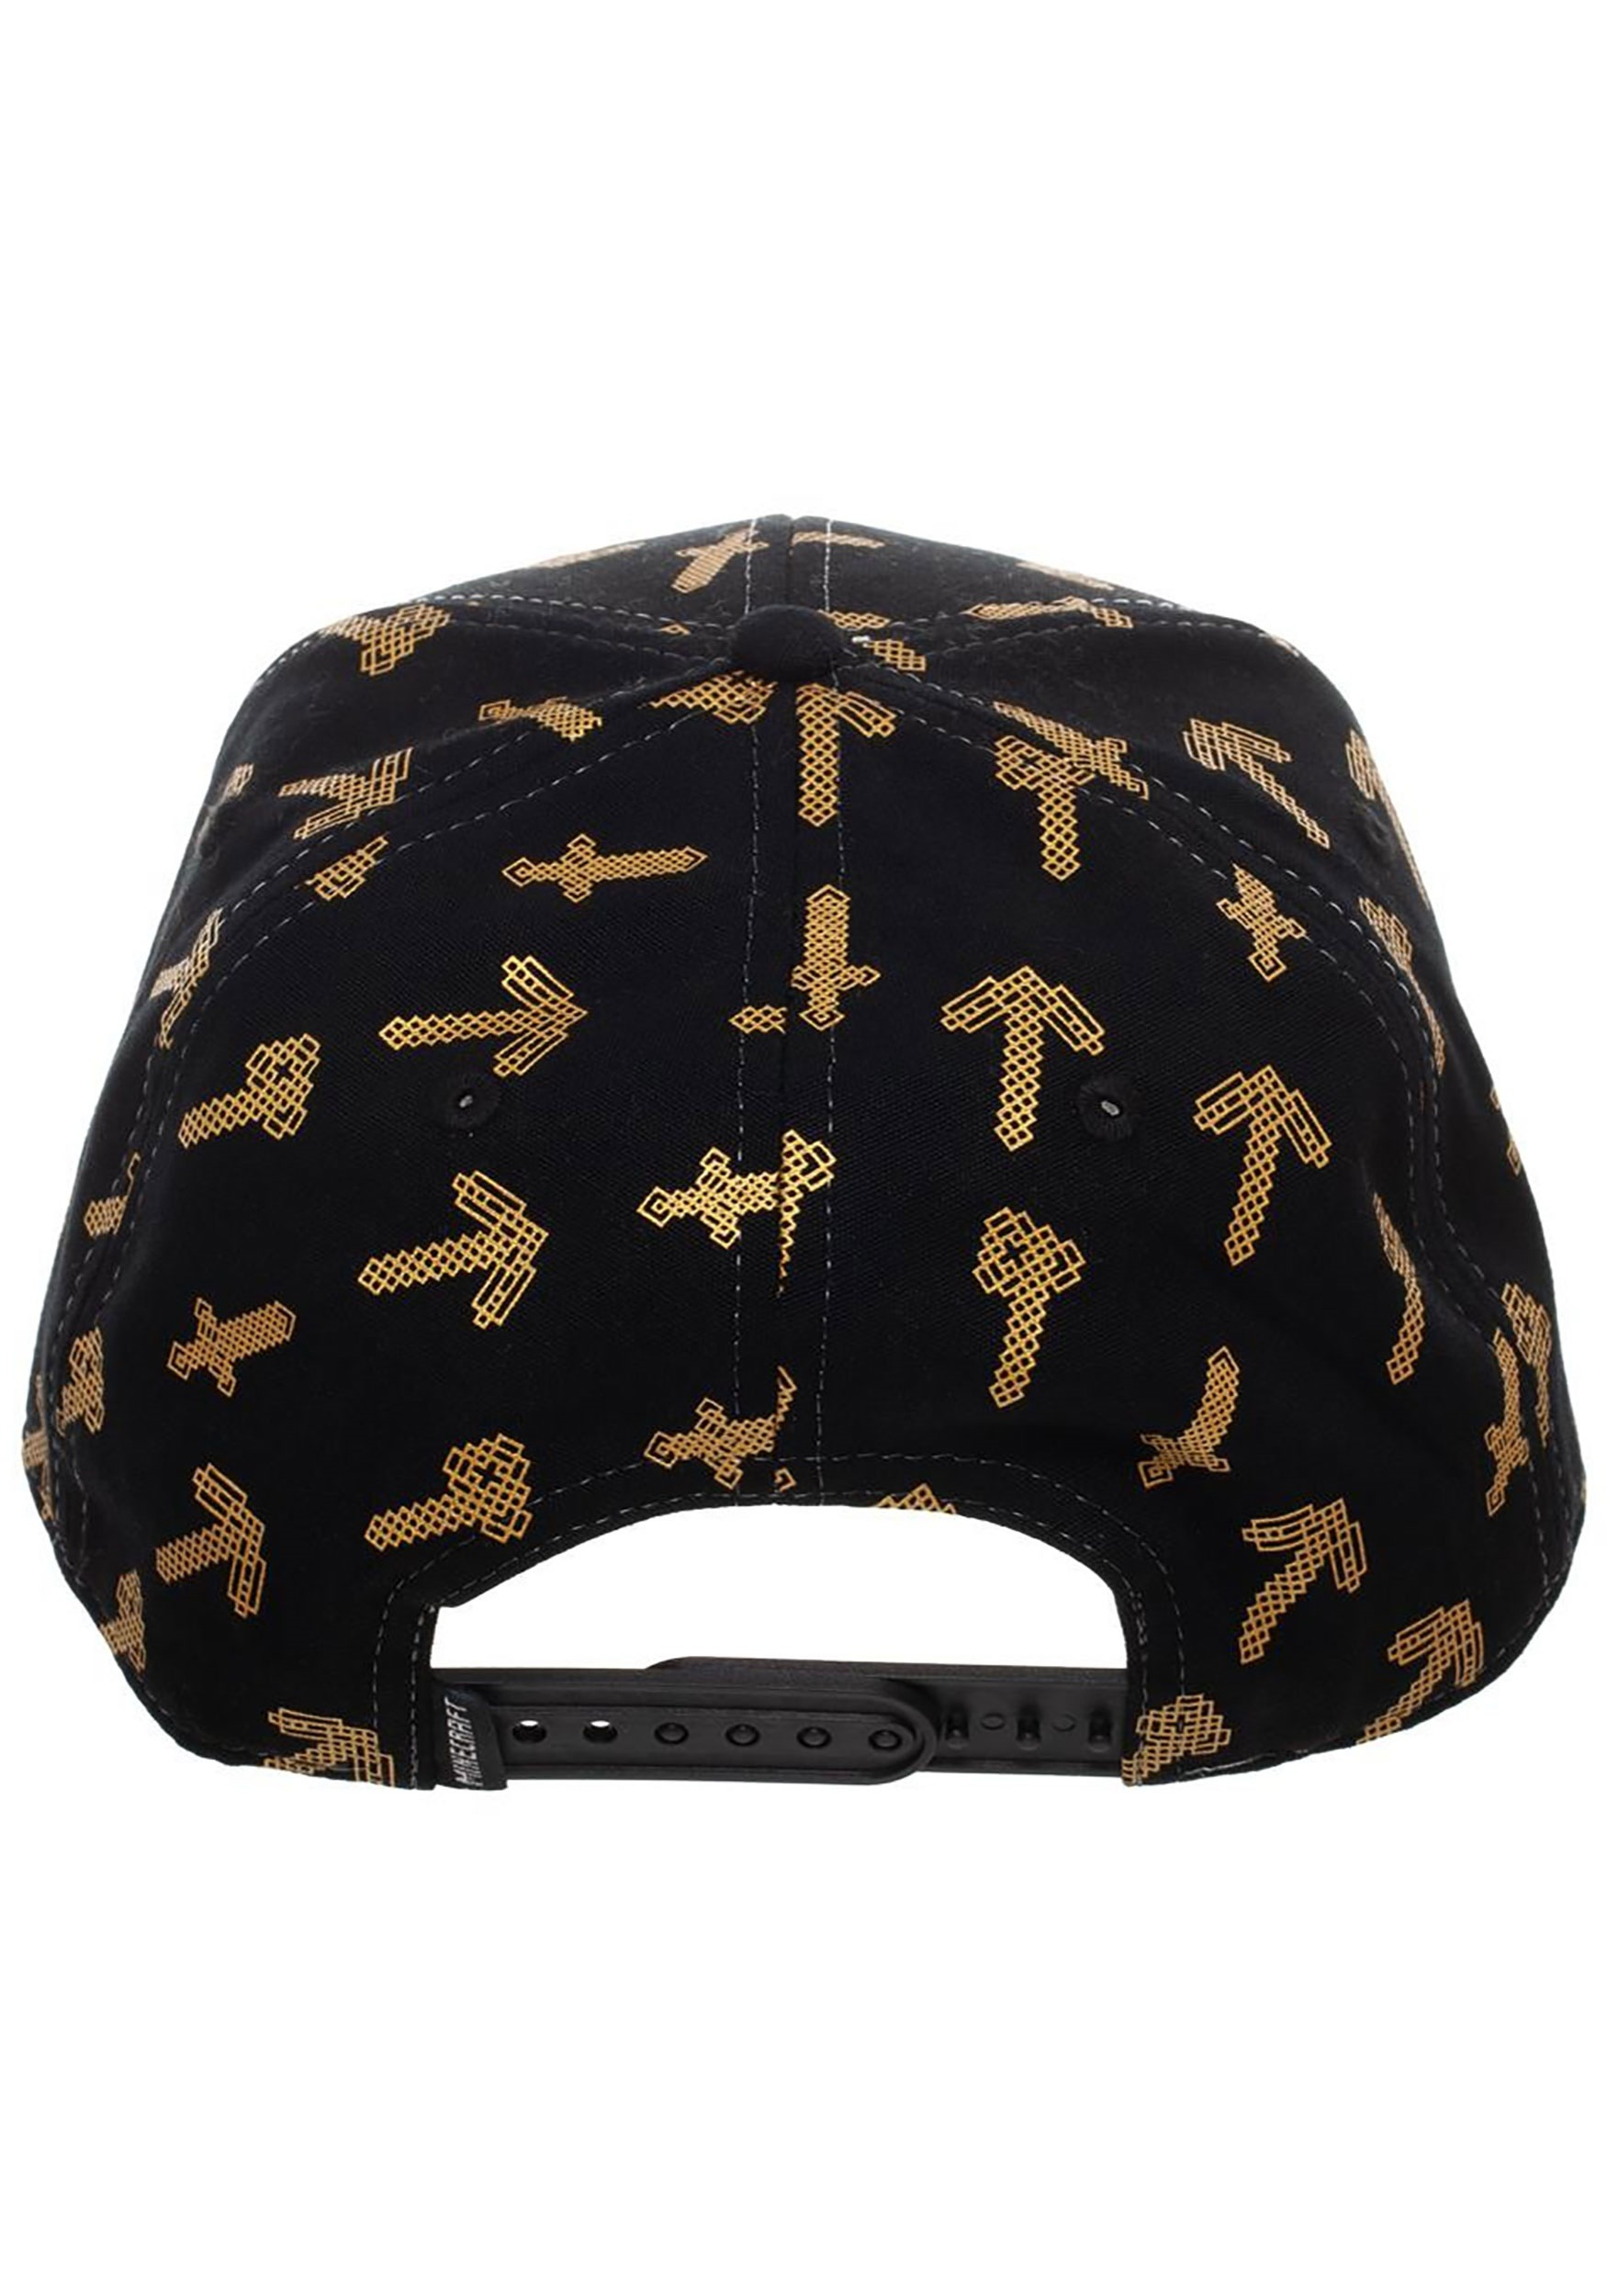 Minecraft Tools Black Amp Brown Snapback Hat For Adults